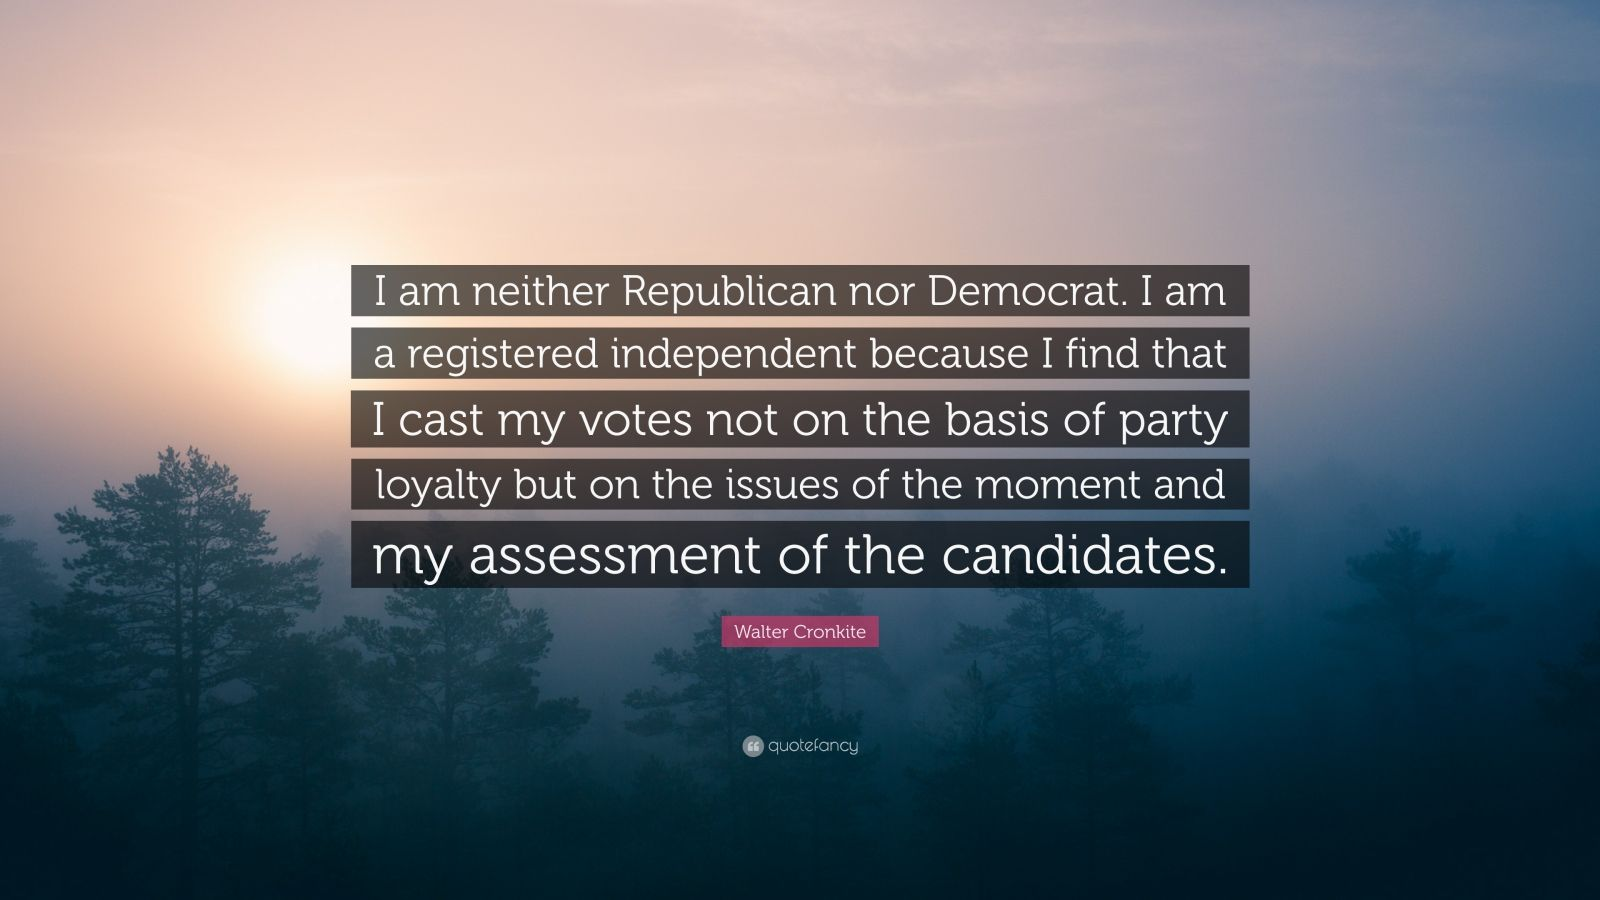 """Walter Cronkite Quote: """"I am neither Republican nor Democrat. I am a registered independent because I find that I cast my votes not on the basis of party loyalty but on the issues of the moment and my assessment of the candidates."""""""